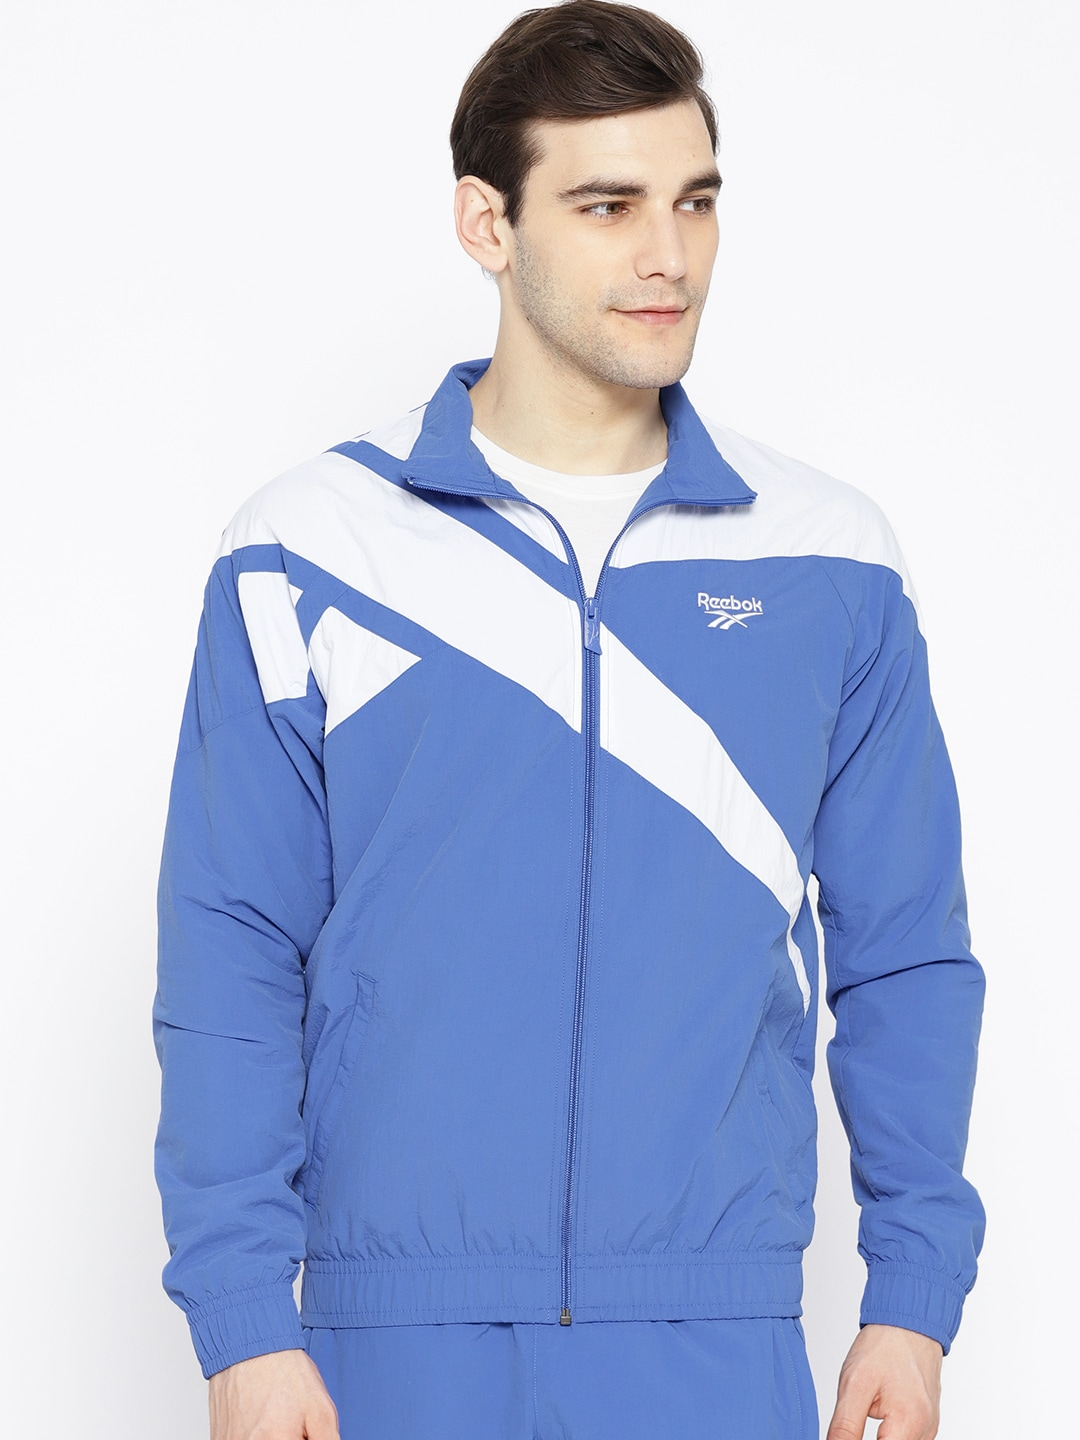 ef3f5966 Reebok Classic Men Blue & White Archive LF Vector Track Jacket